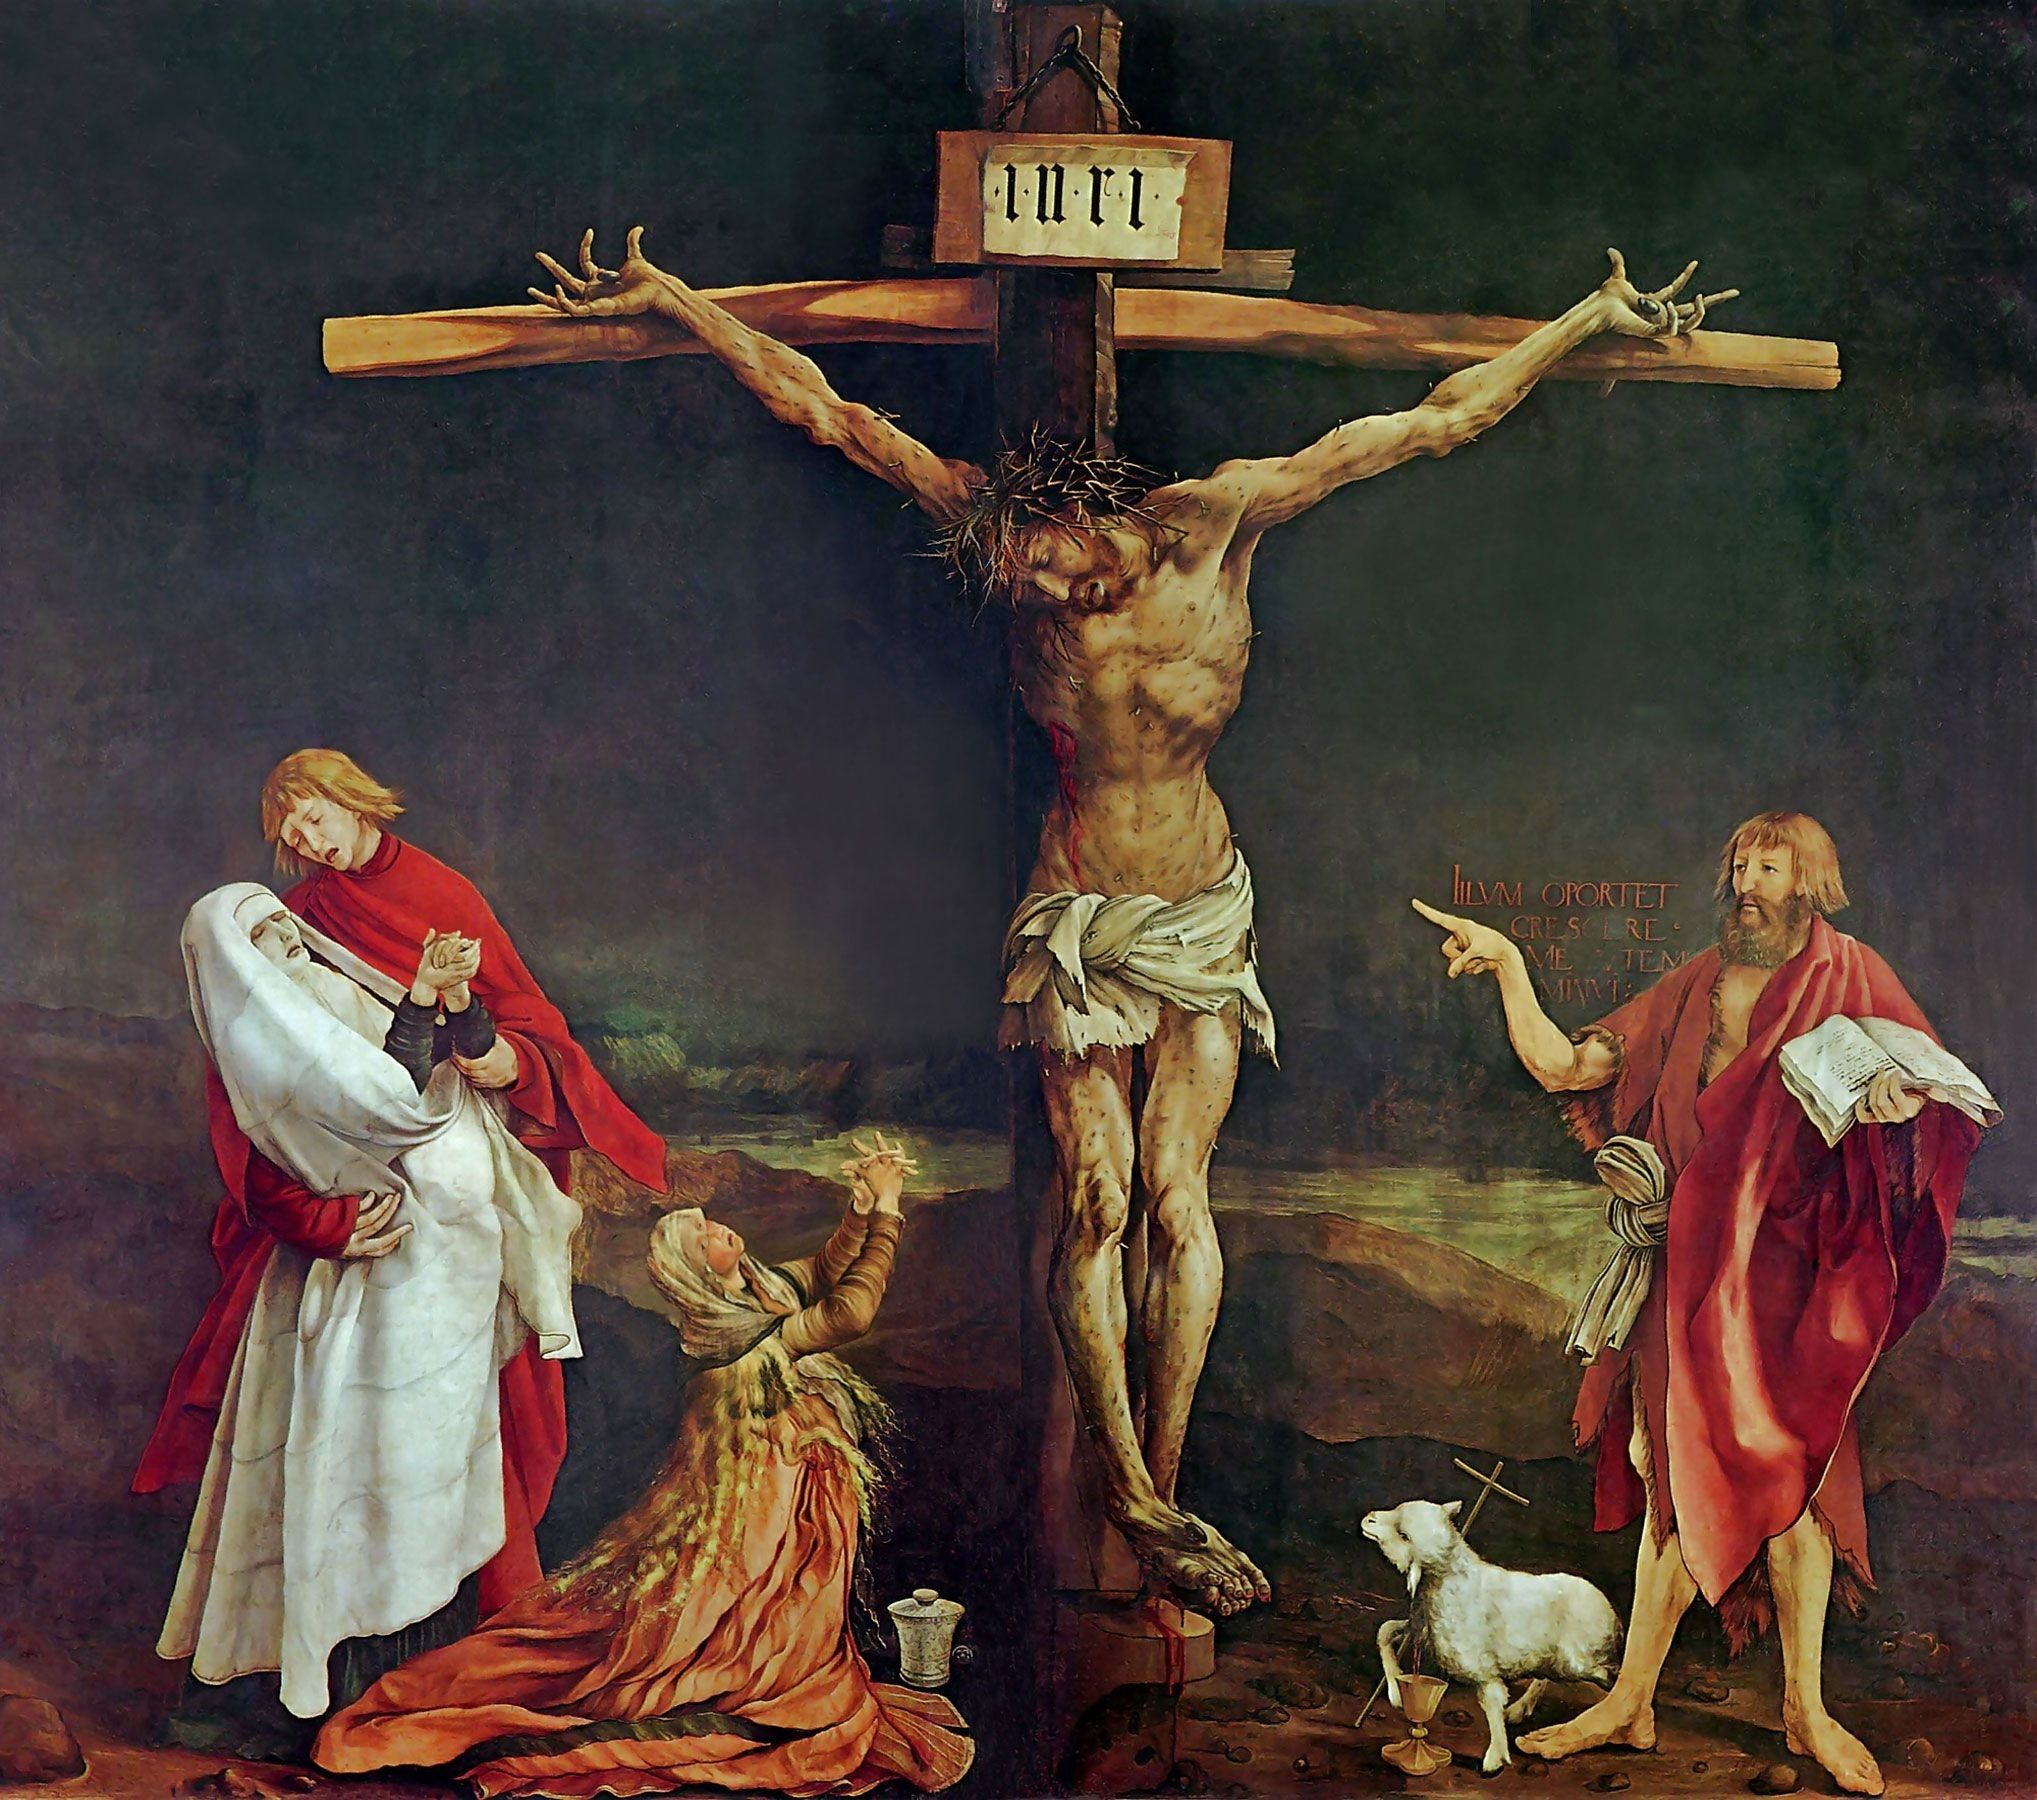 Christ Painting Cross Flag Green Red Angels